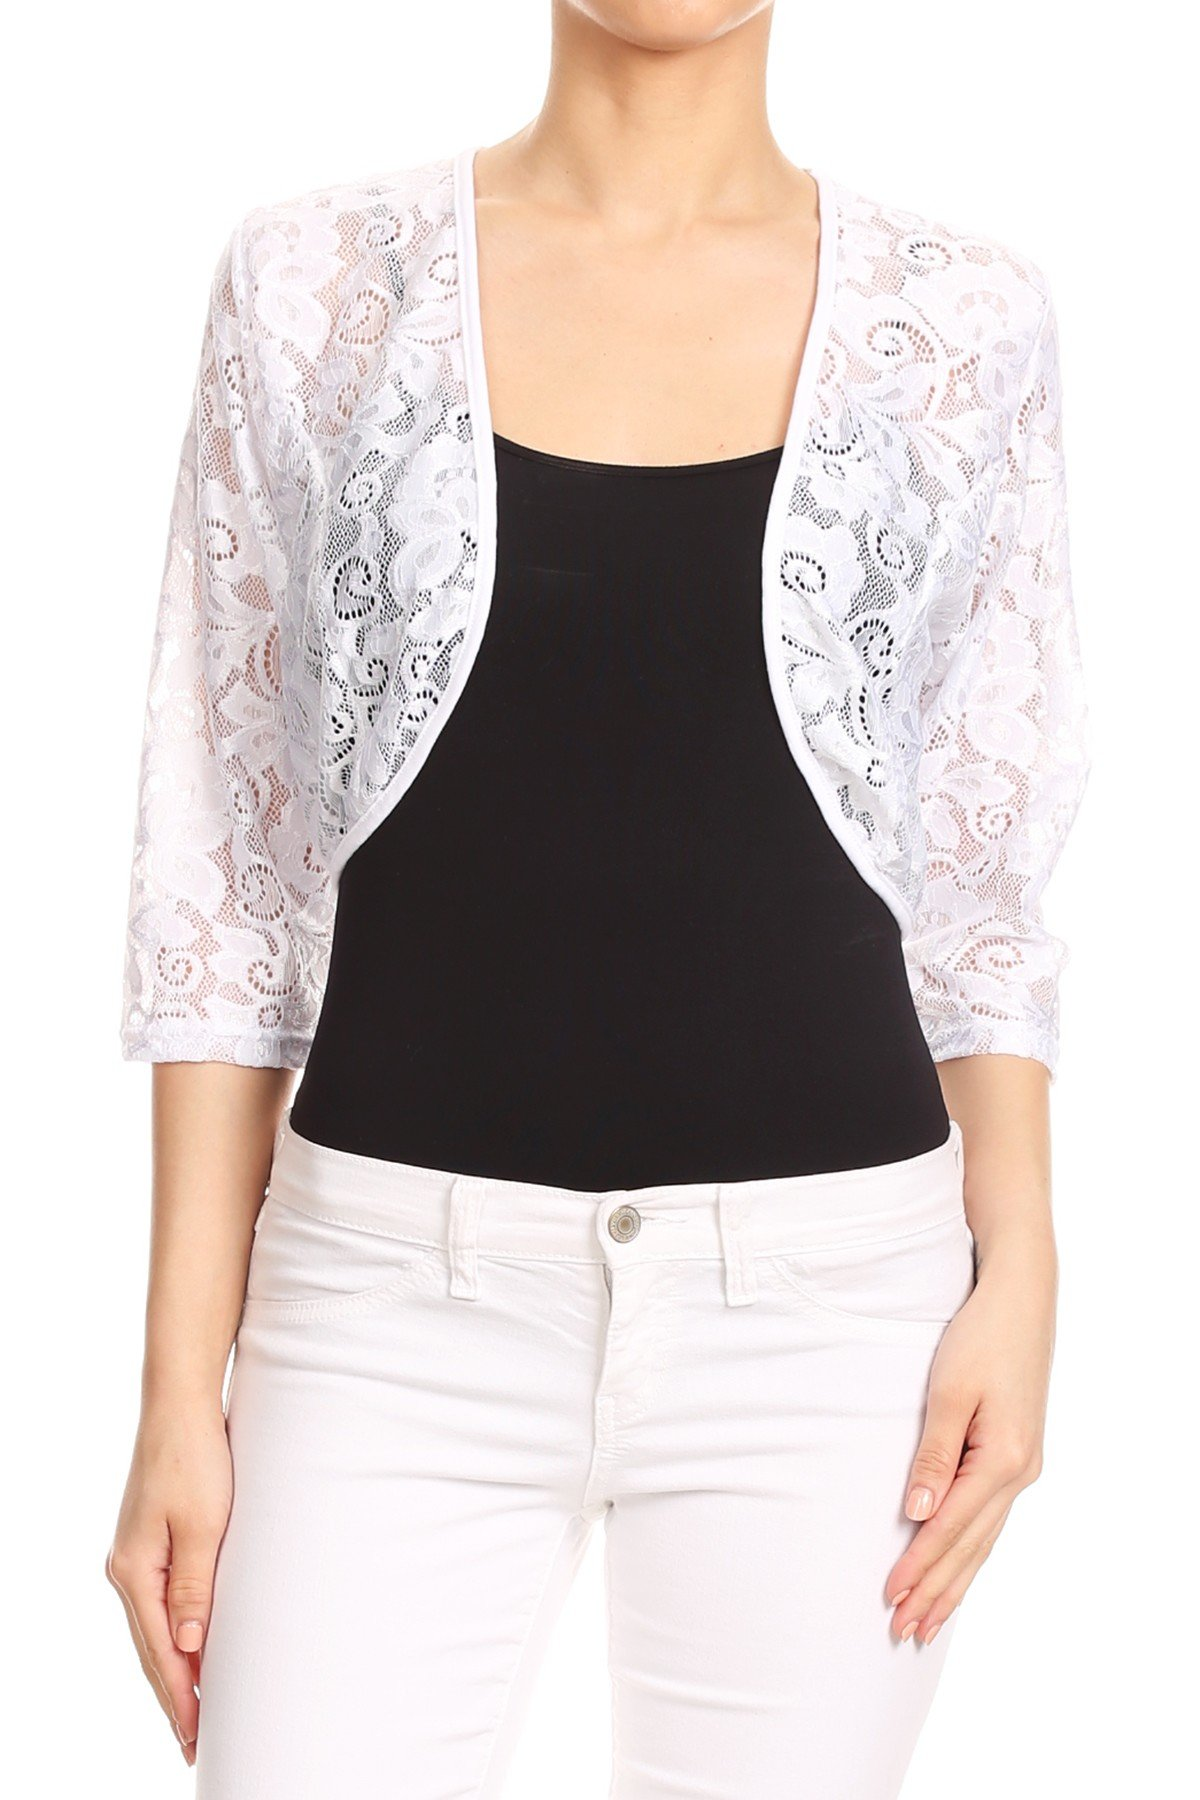 First Spring Women's Regular Plus Size Sheer Lace Shrug Cardigan Bolero. Made in USA. (1XL, White-FL)